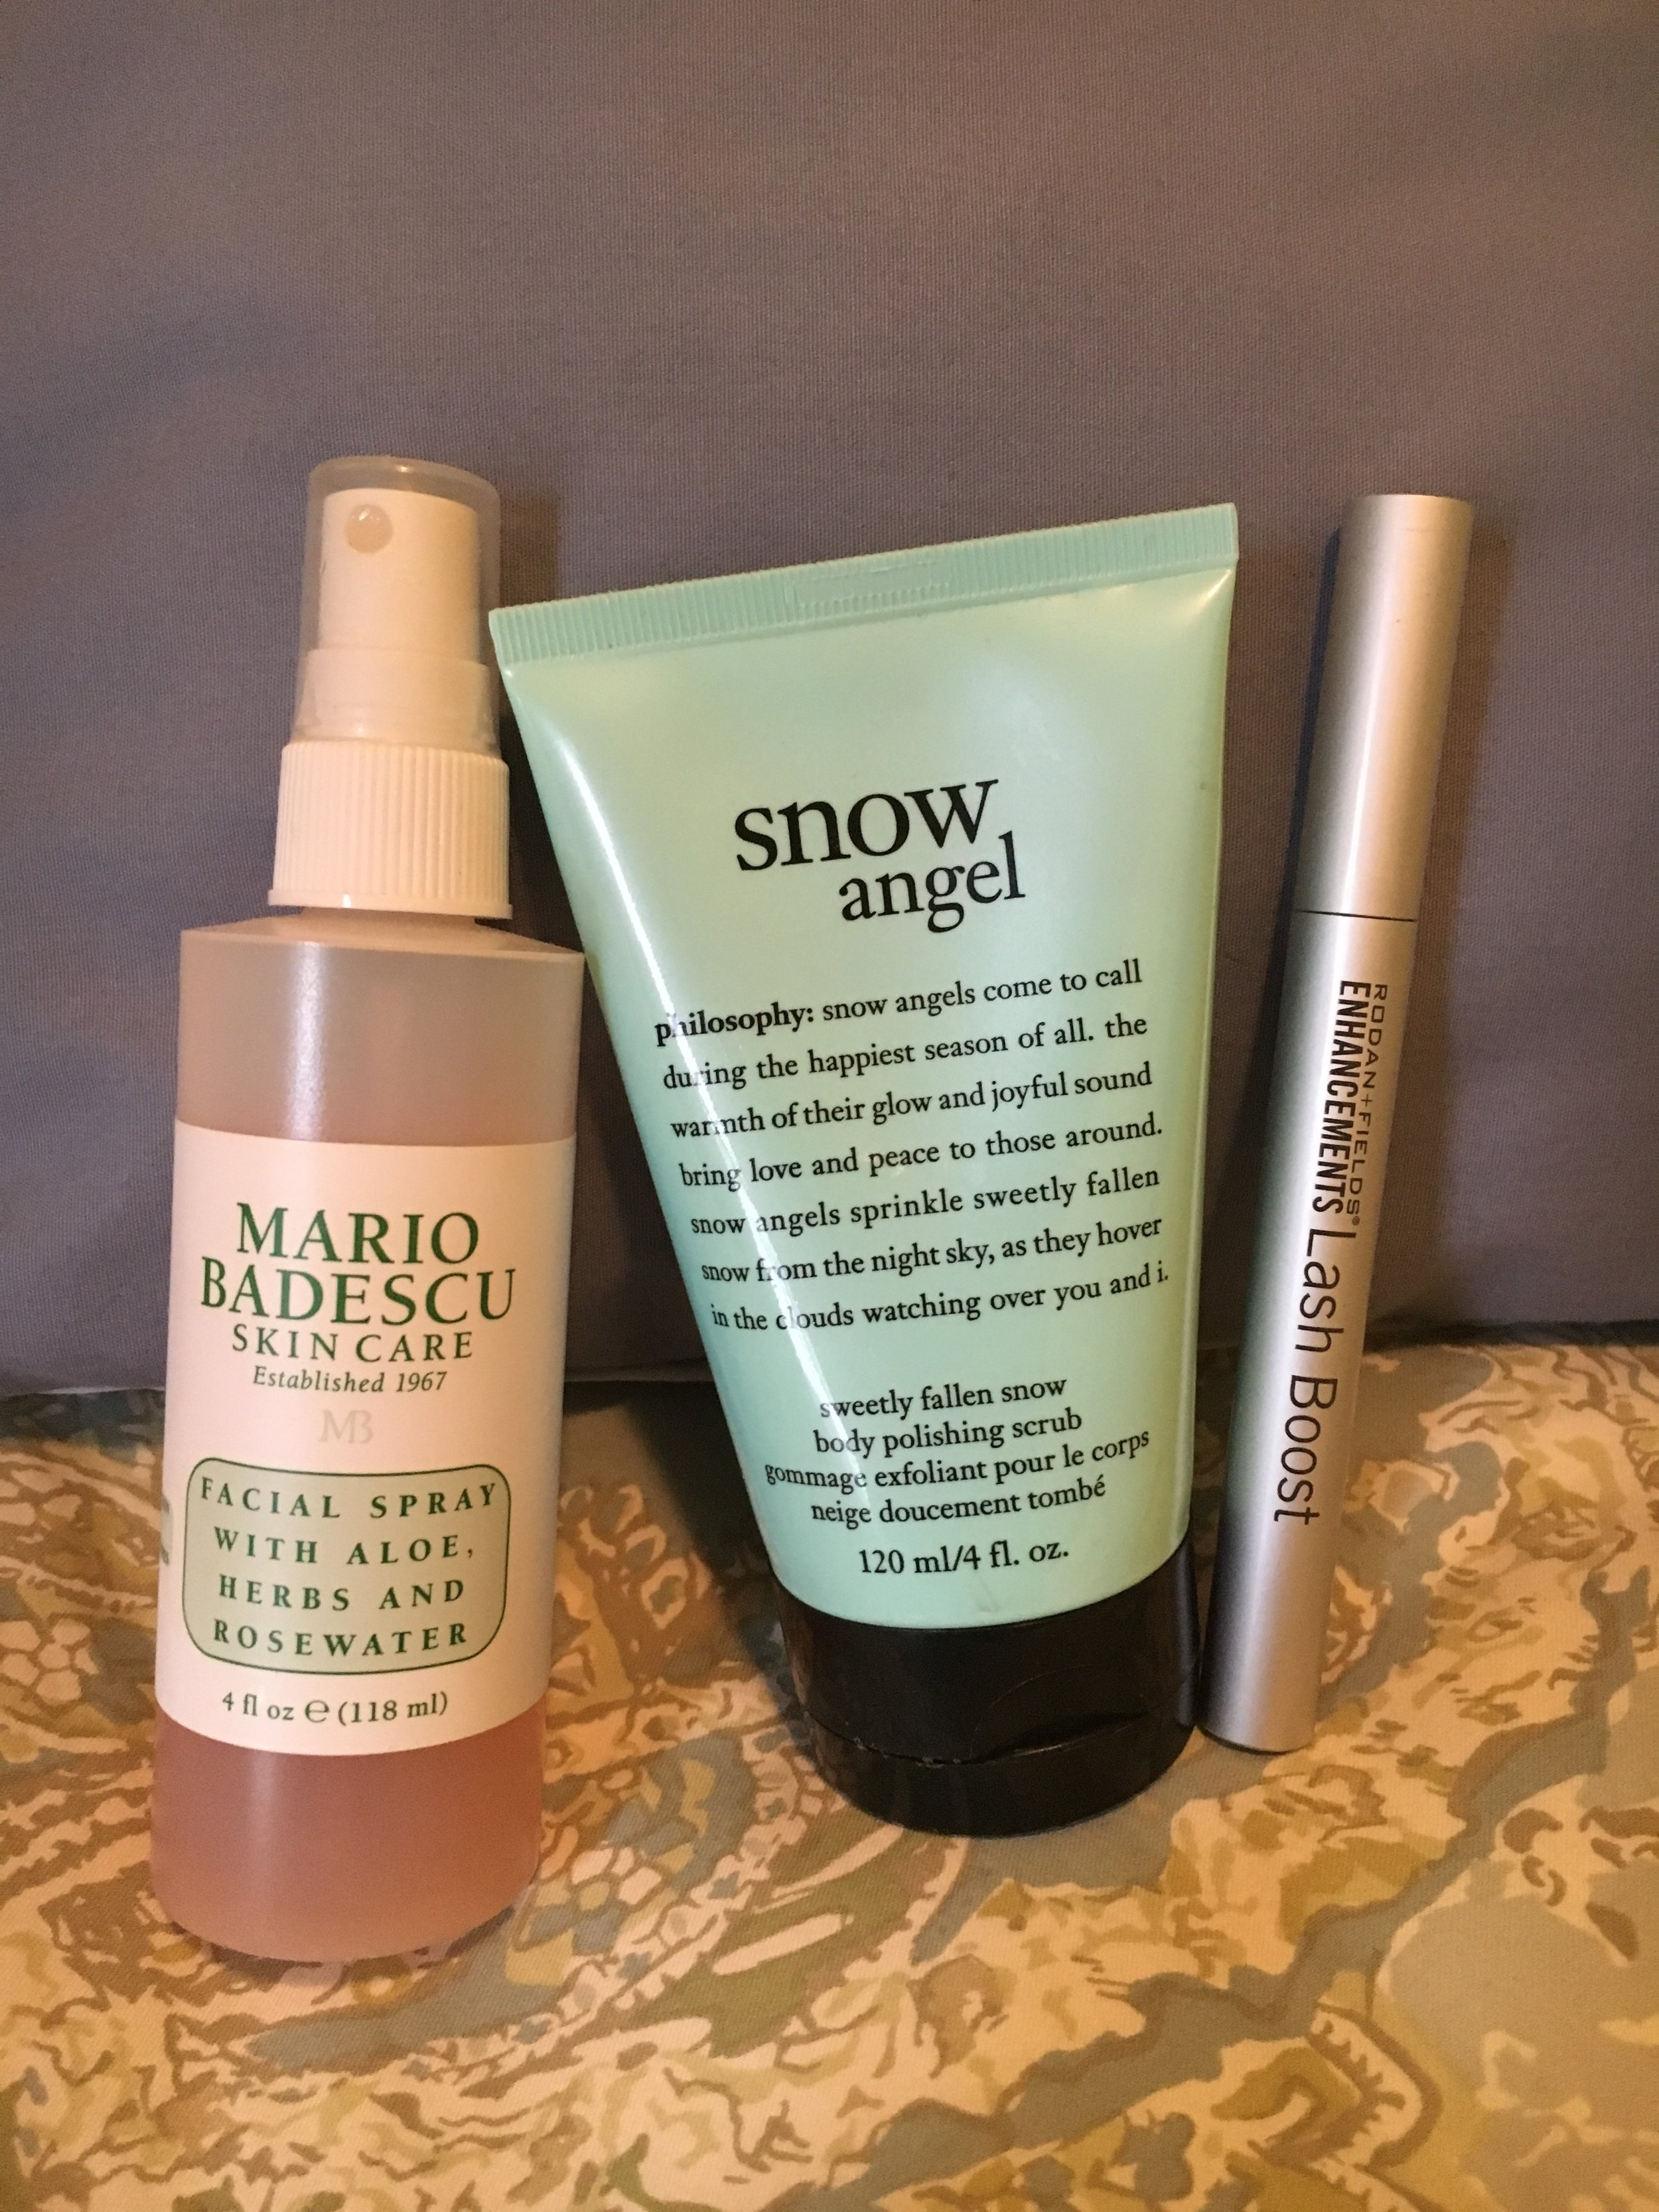 These are some products I'm loving at the moment, especially on snowy days!  Mario Badescu  facial spray with aloe herbs and rose water,  Philosophy  snow angel body scrub, and Rodan & Fields lash boost serum. More below.